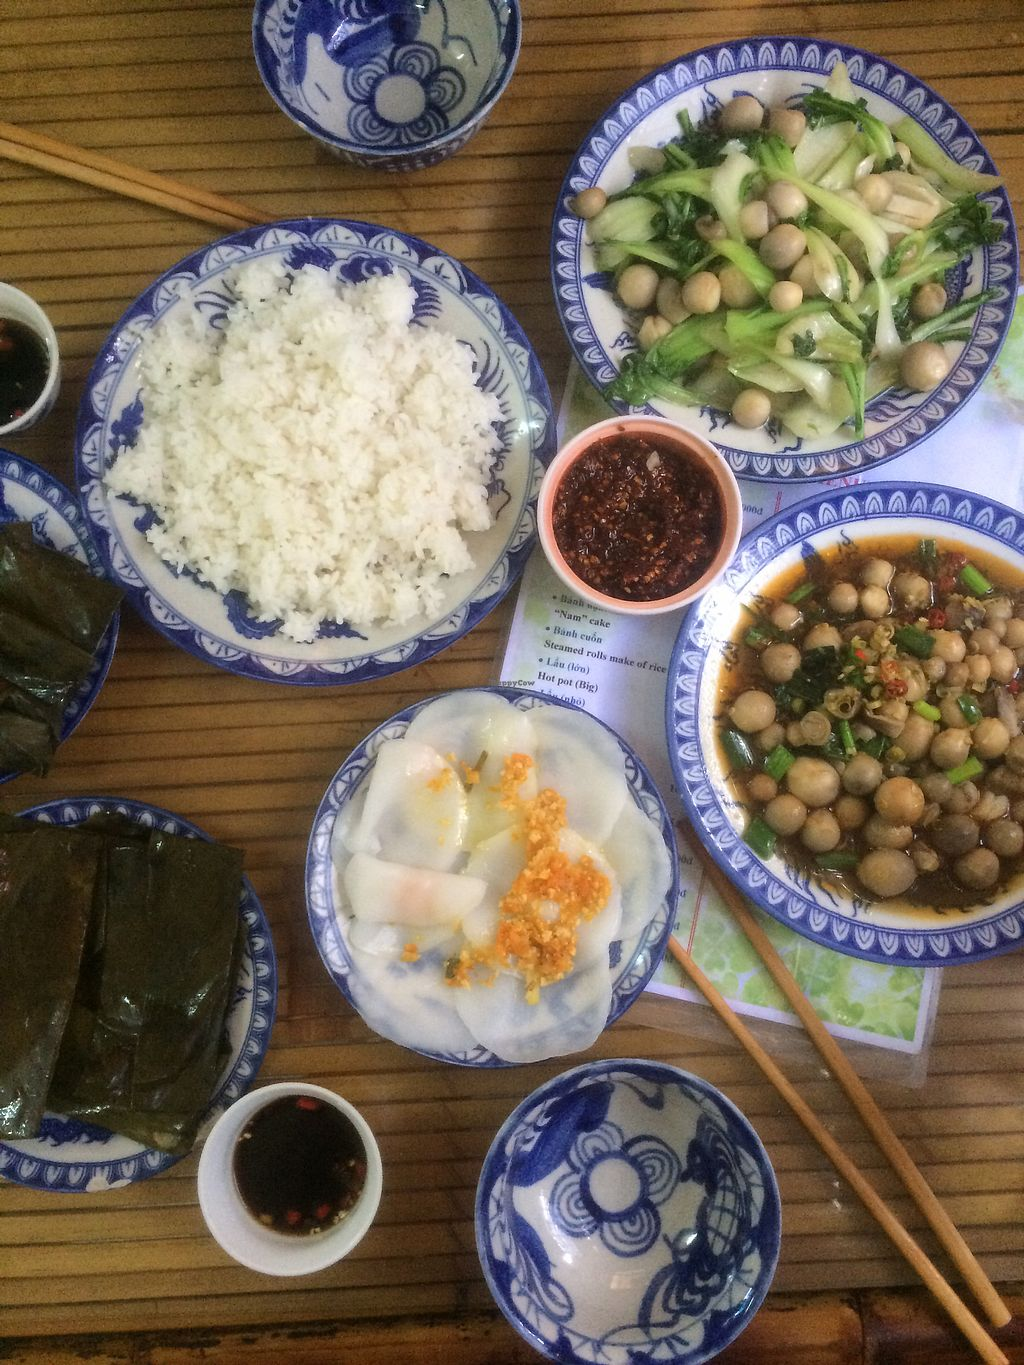 """Photo of Thanh Lieu  by <a href=""""/members/profile/Helentravels"""">Helentravels</a> <br/>citronella mushrooms, mushrooms with cabbage and""""cakes"""" <br/> July 25, 2017  - <a href='/contact/abuse/image/28812/284550'>Report</a>"""